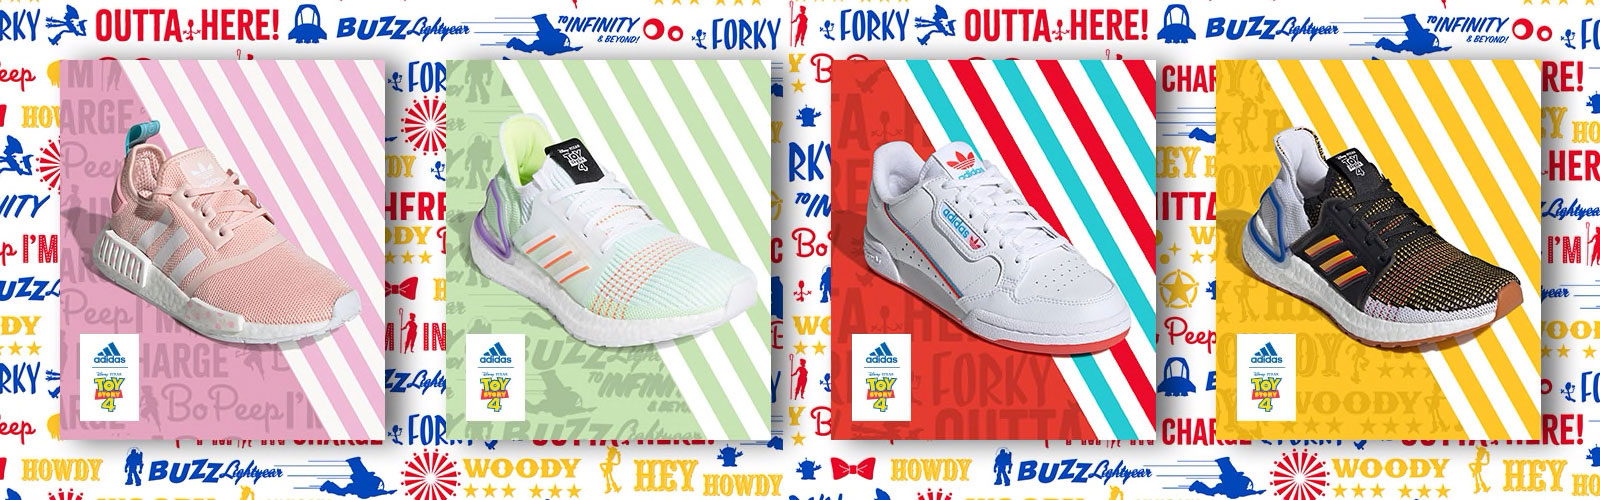 toy-story-4-adidas-shoes